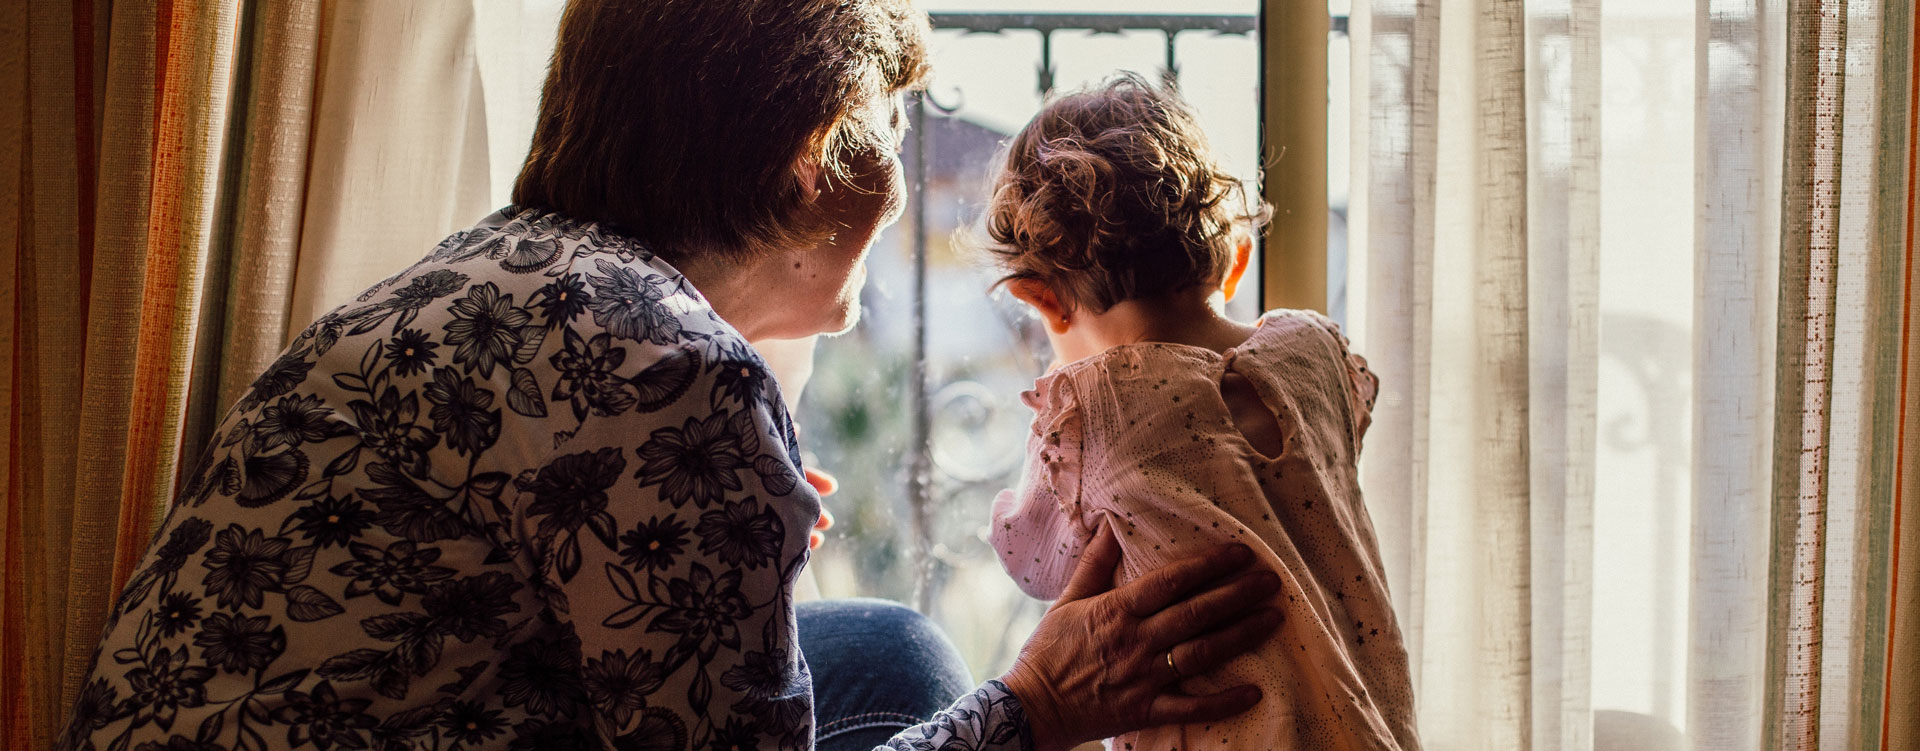 Old lady and a child looking outside window after a domestic violence